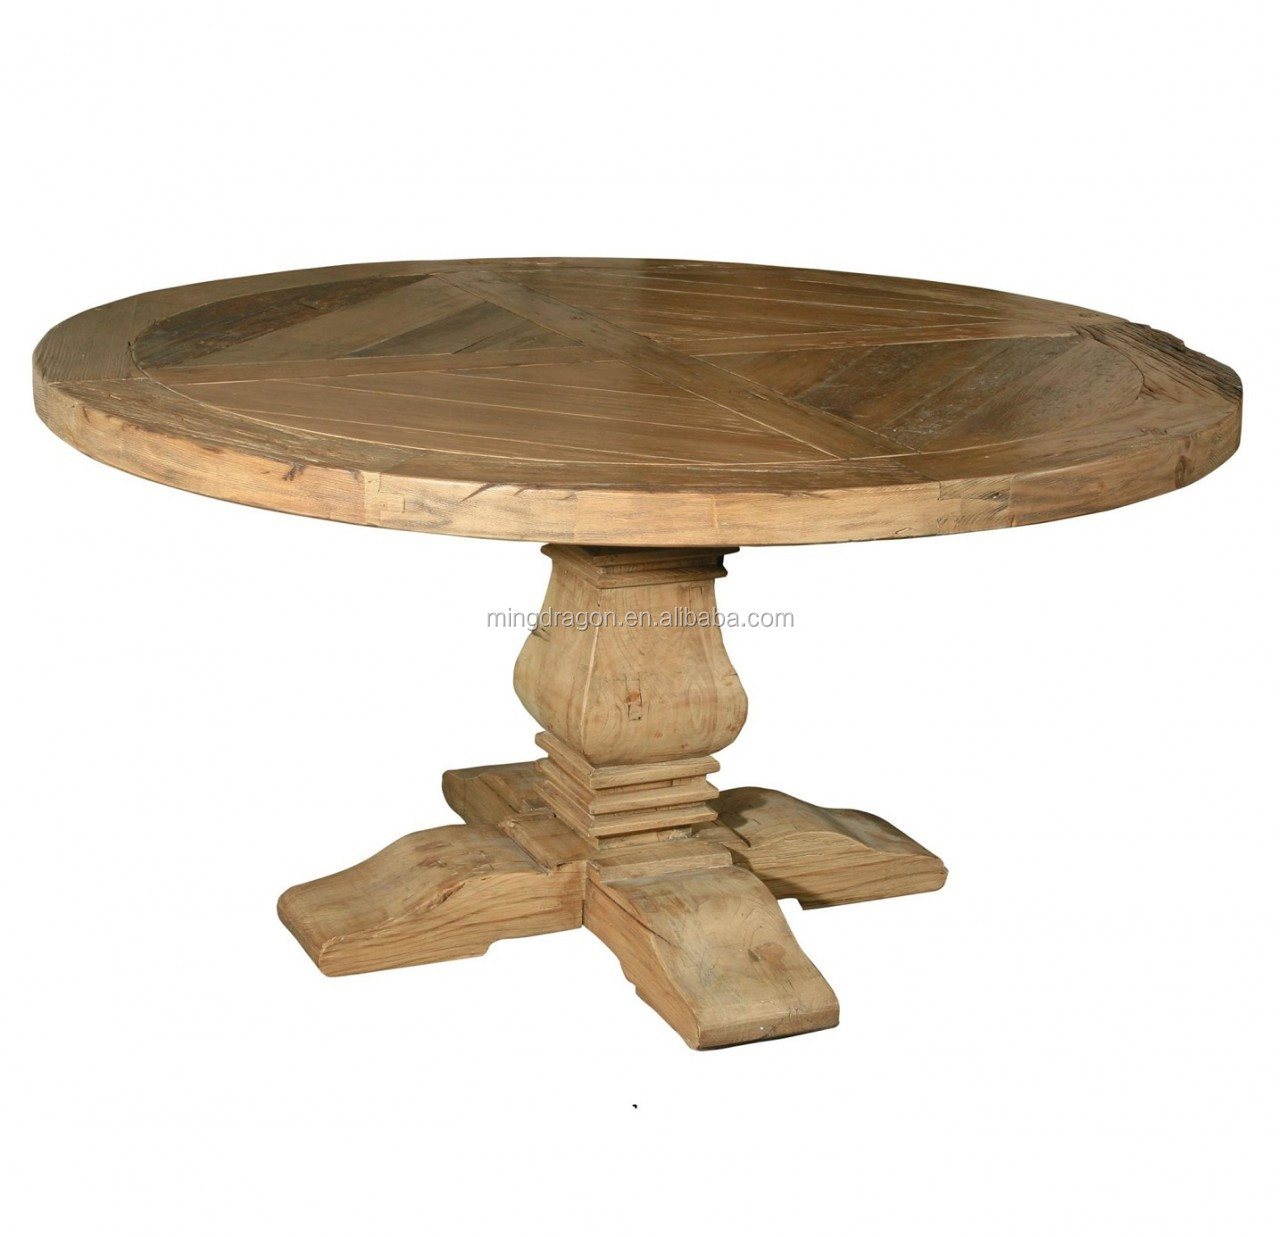 Round Pine Kitchen Table Photo Industrial Style Round Dining Table Images